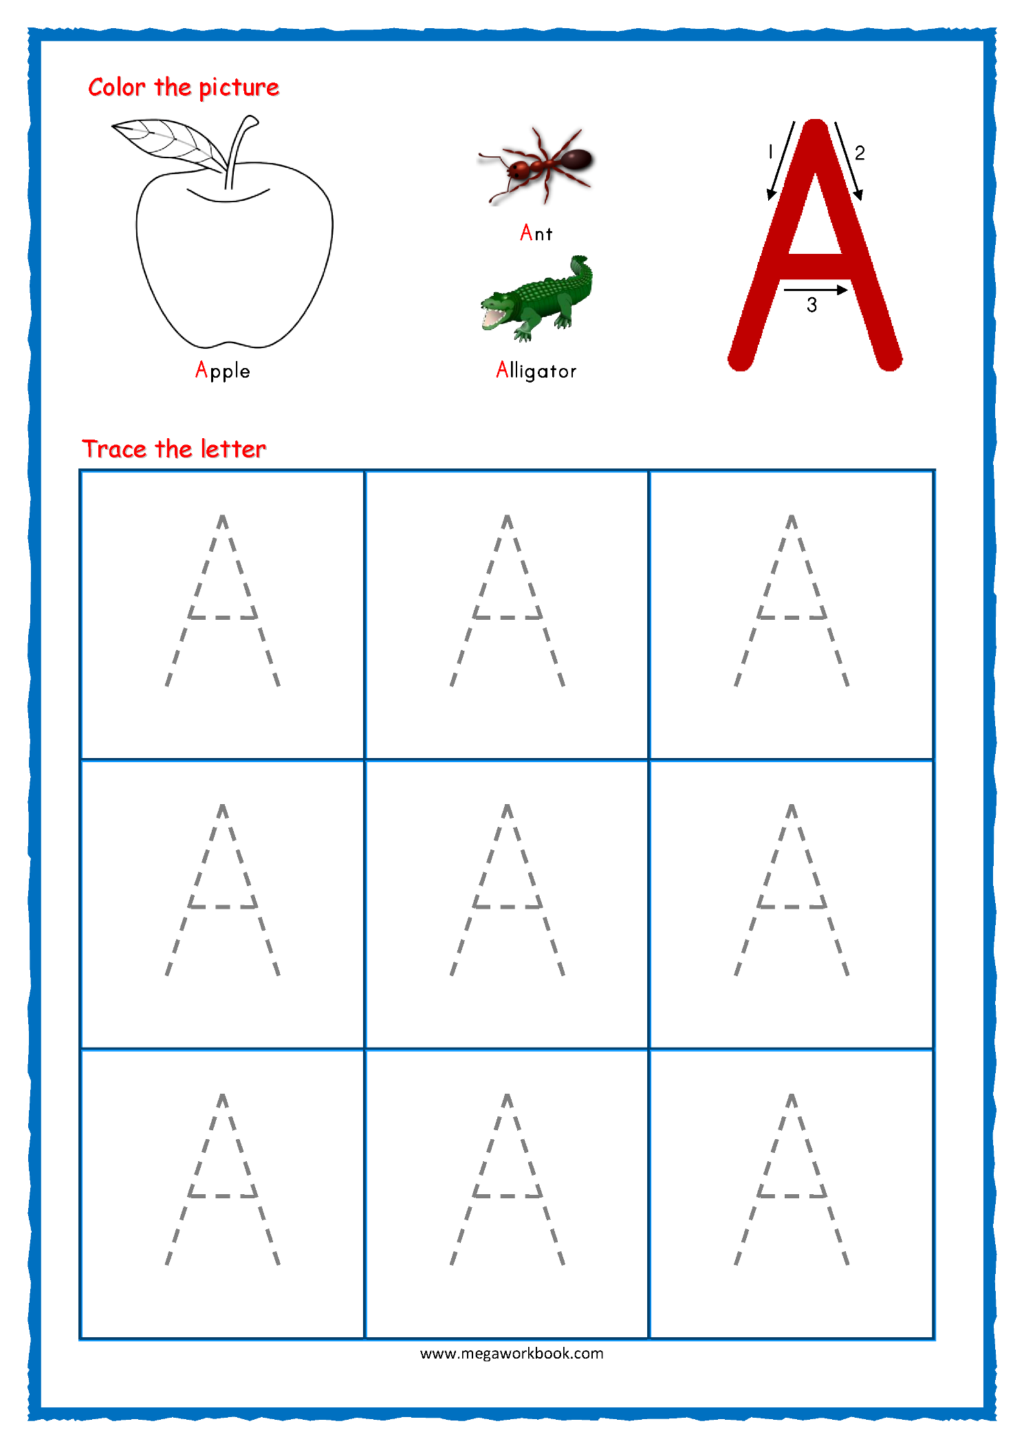 Worksheet ~ Phenomenal Free Preschool Printable Worksheets